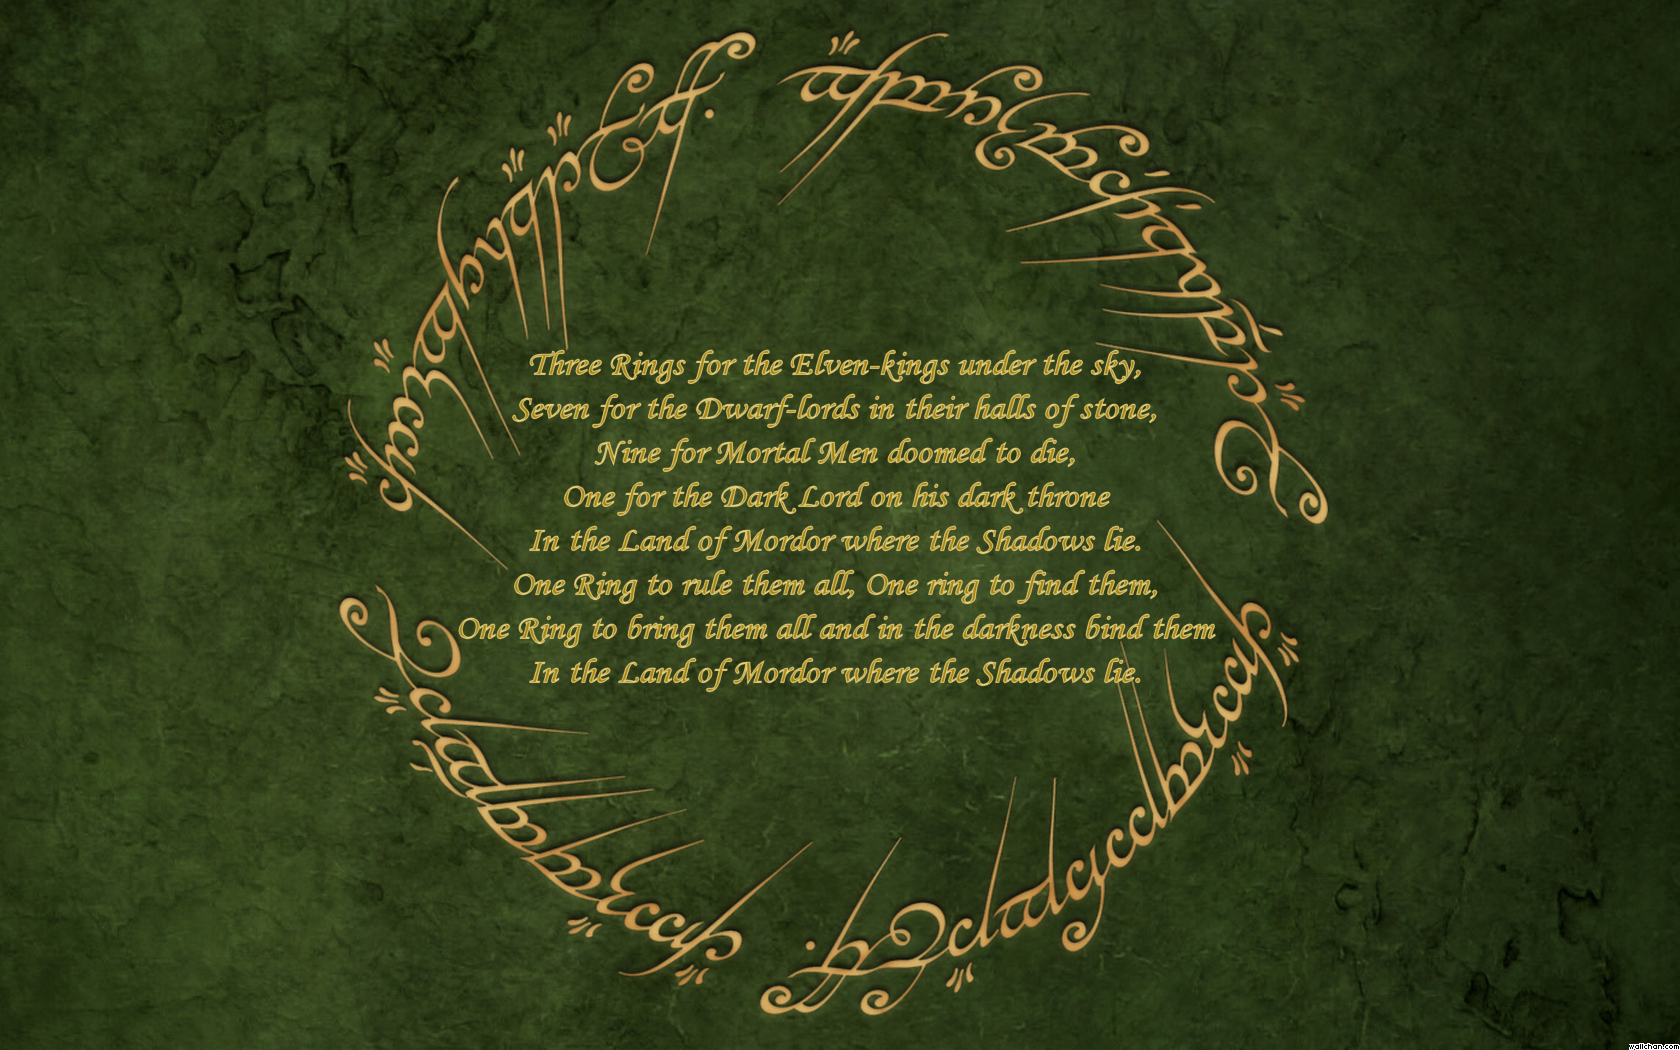 Google Image Result For Http://wallchan.com/images/sandbox/3067 Lord Of The  Rings Lotr Quote.png